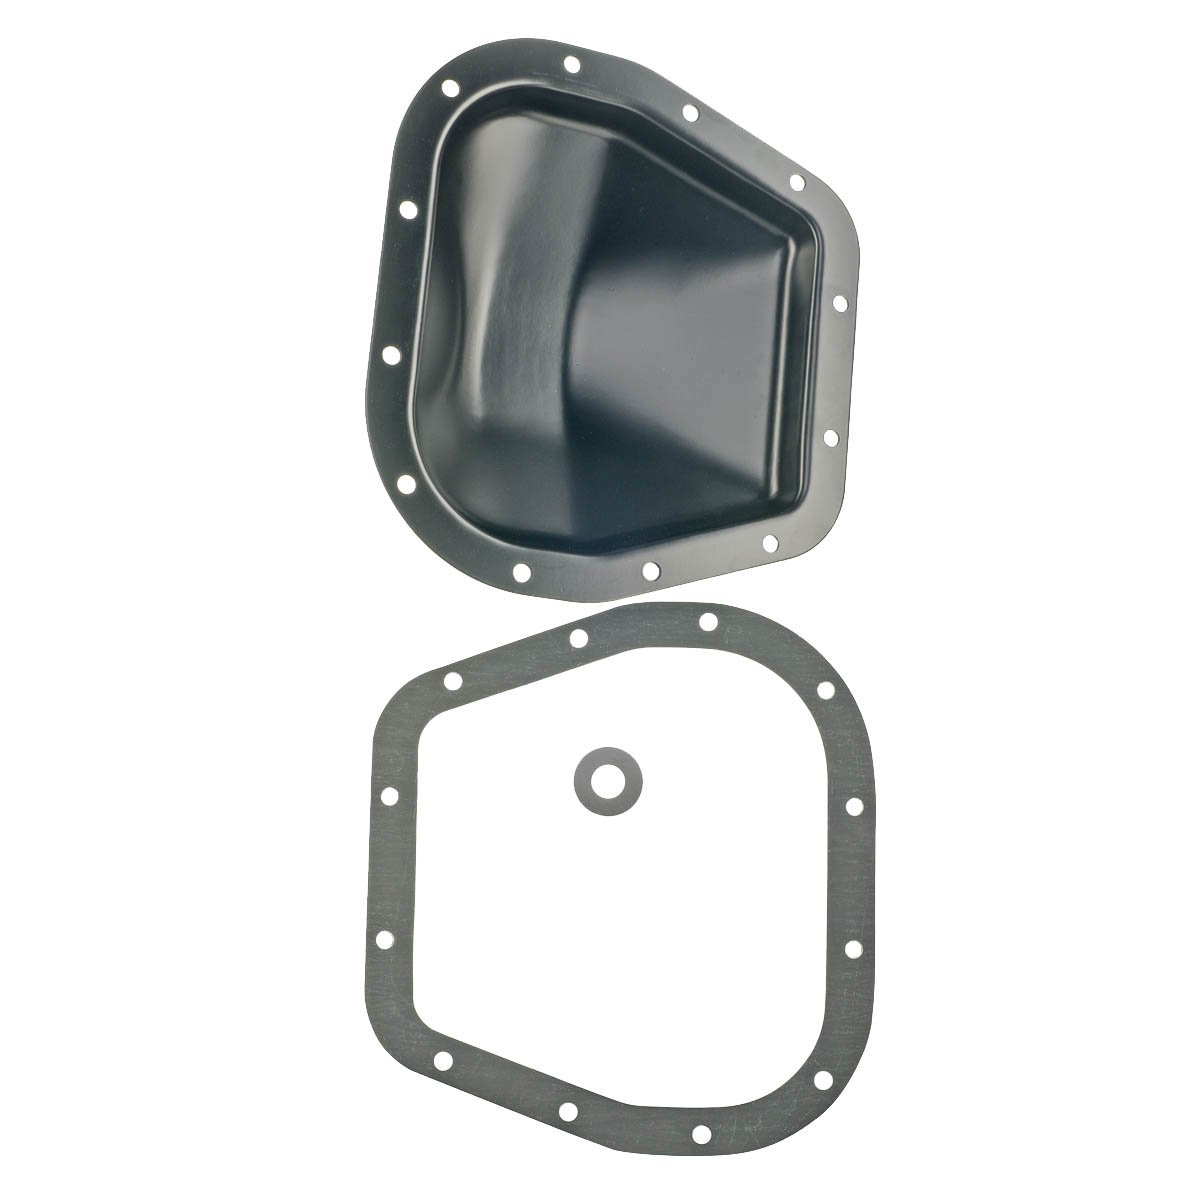 A-Premium Rear Differential Cover for Ford F-150 1997-2011 F-250 Expedition Lobo E-150 Lincoln Mark LT Navigator PremiumpartsWhosale